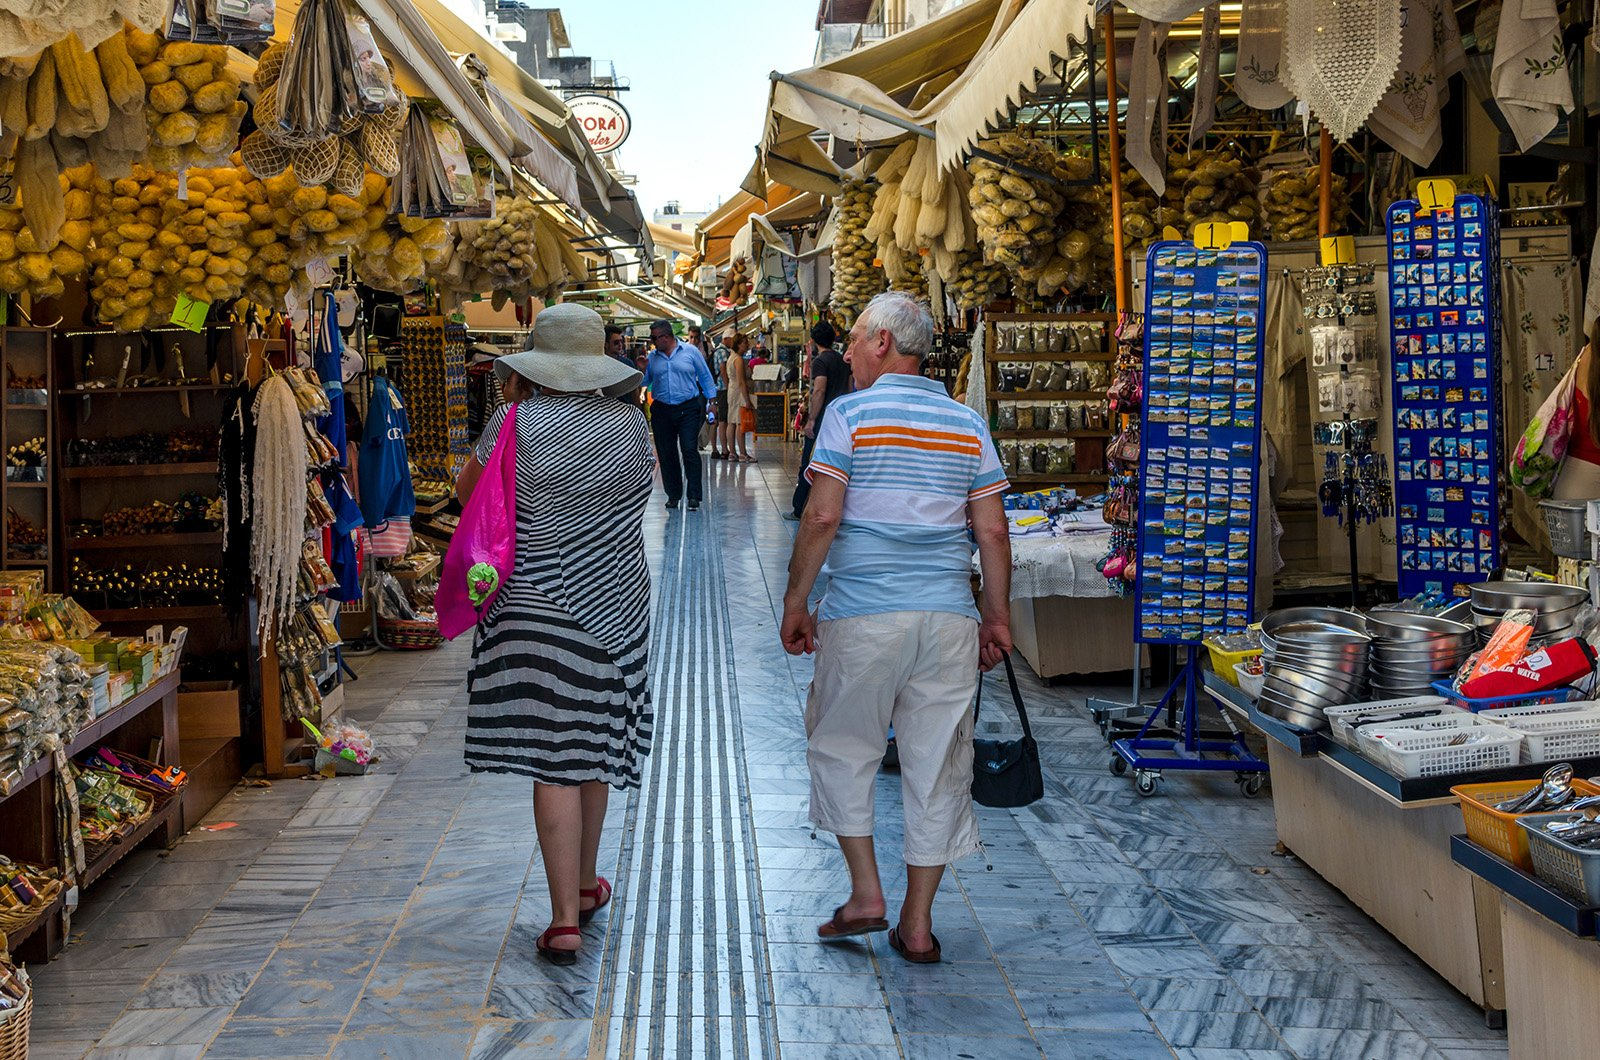 Top Attractions on Crete, Greece - Heraklion Old Town Market © Isidoros Andronos, Shutterstock